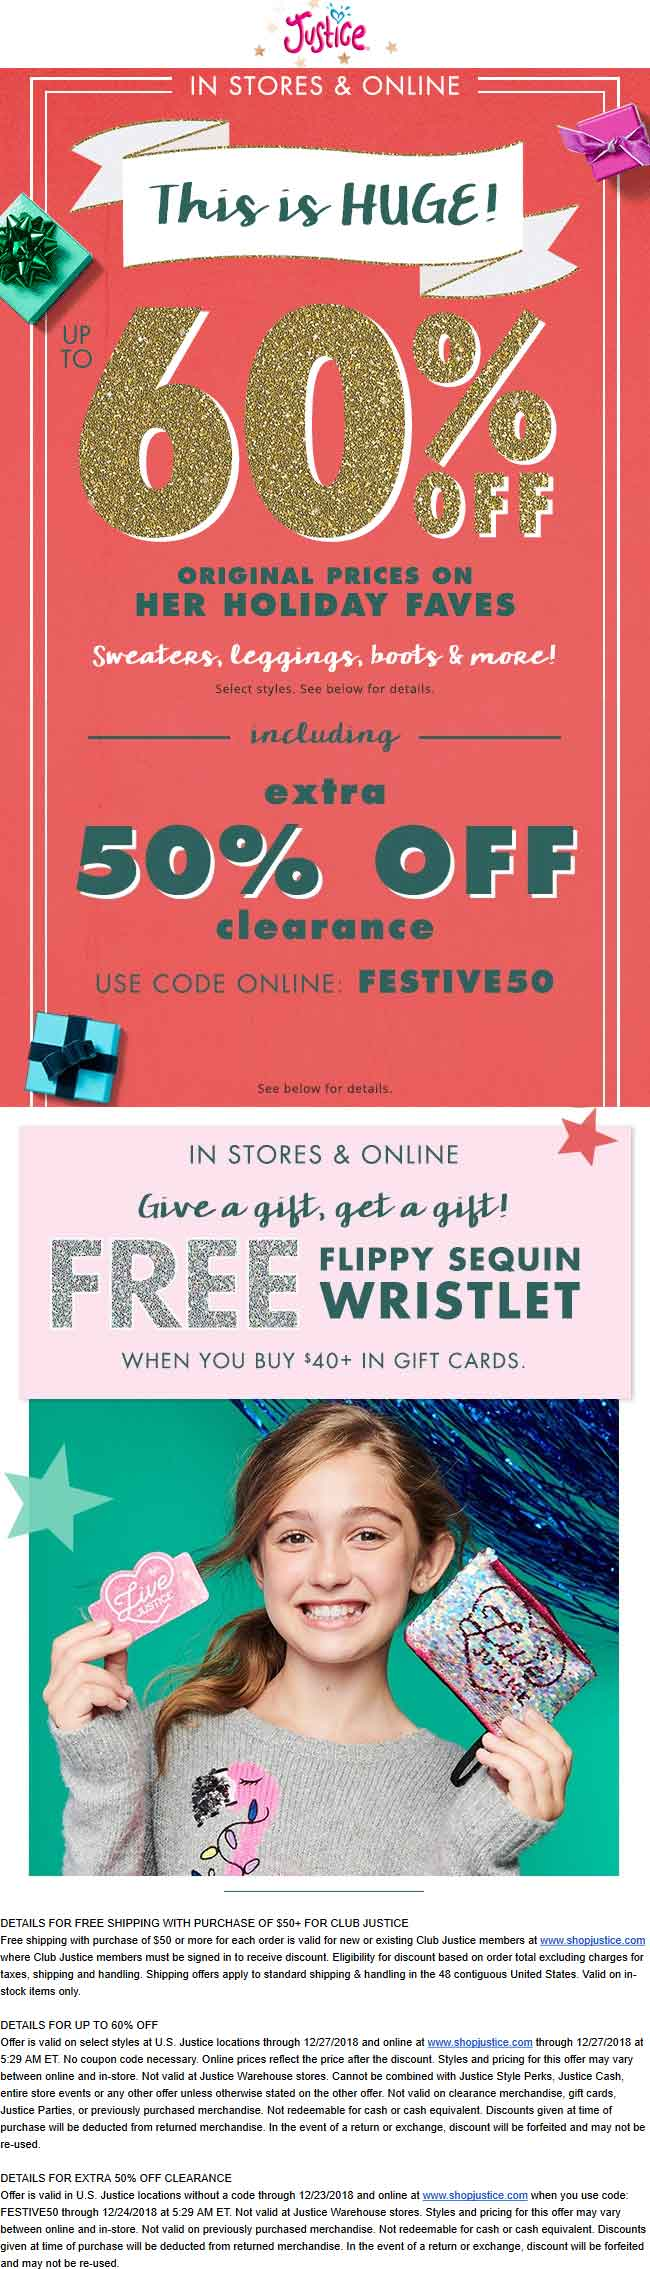 Justice Coupon January 2020 Extra 50% off clearance & more today at Justice, or online via promo code FESTIVE50